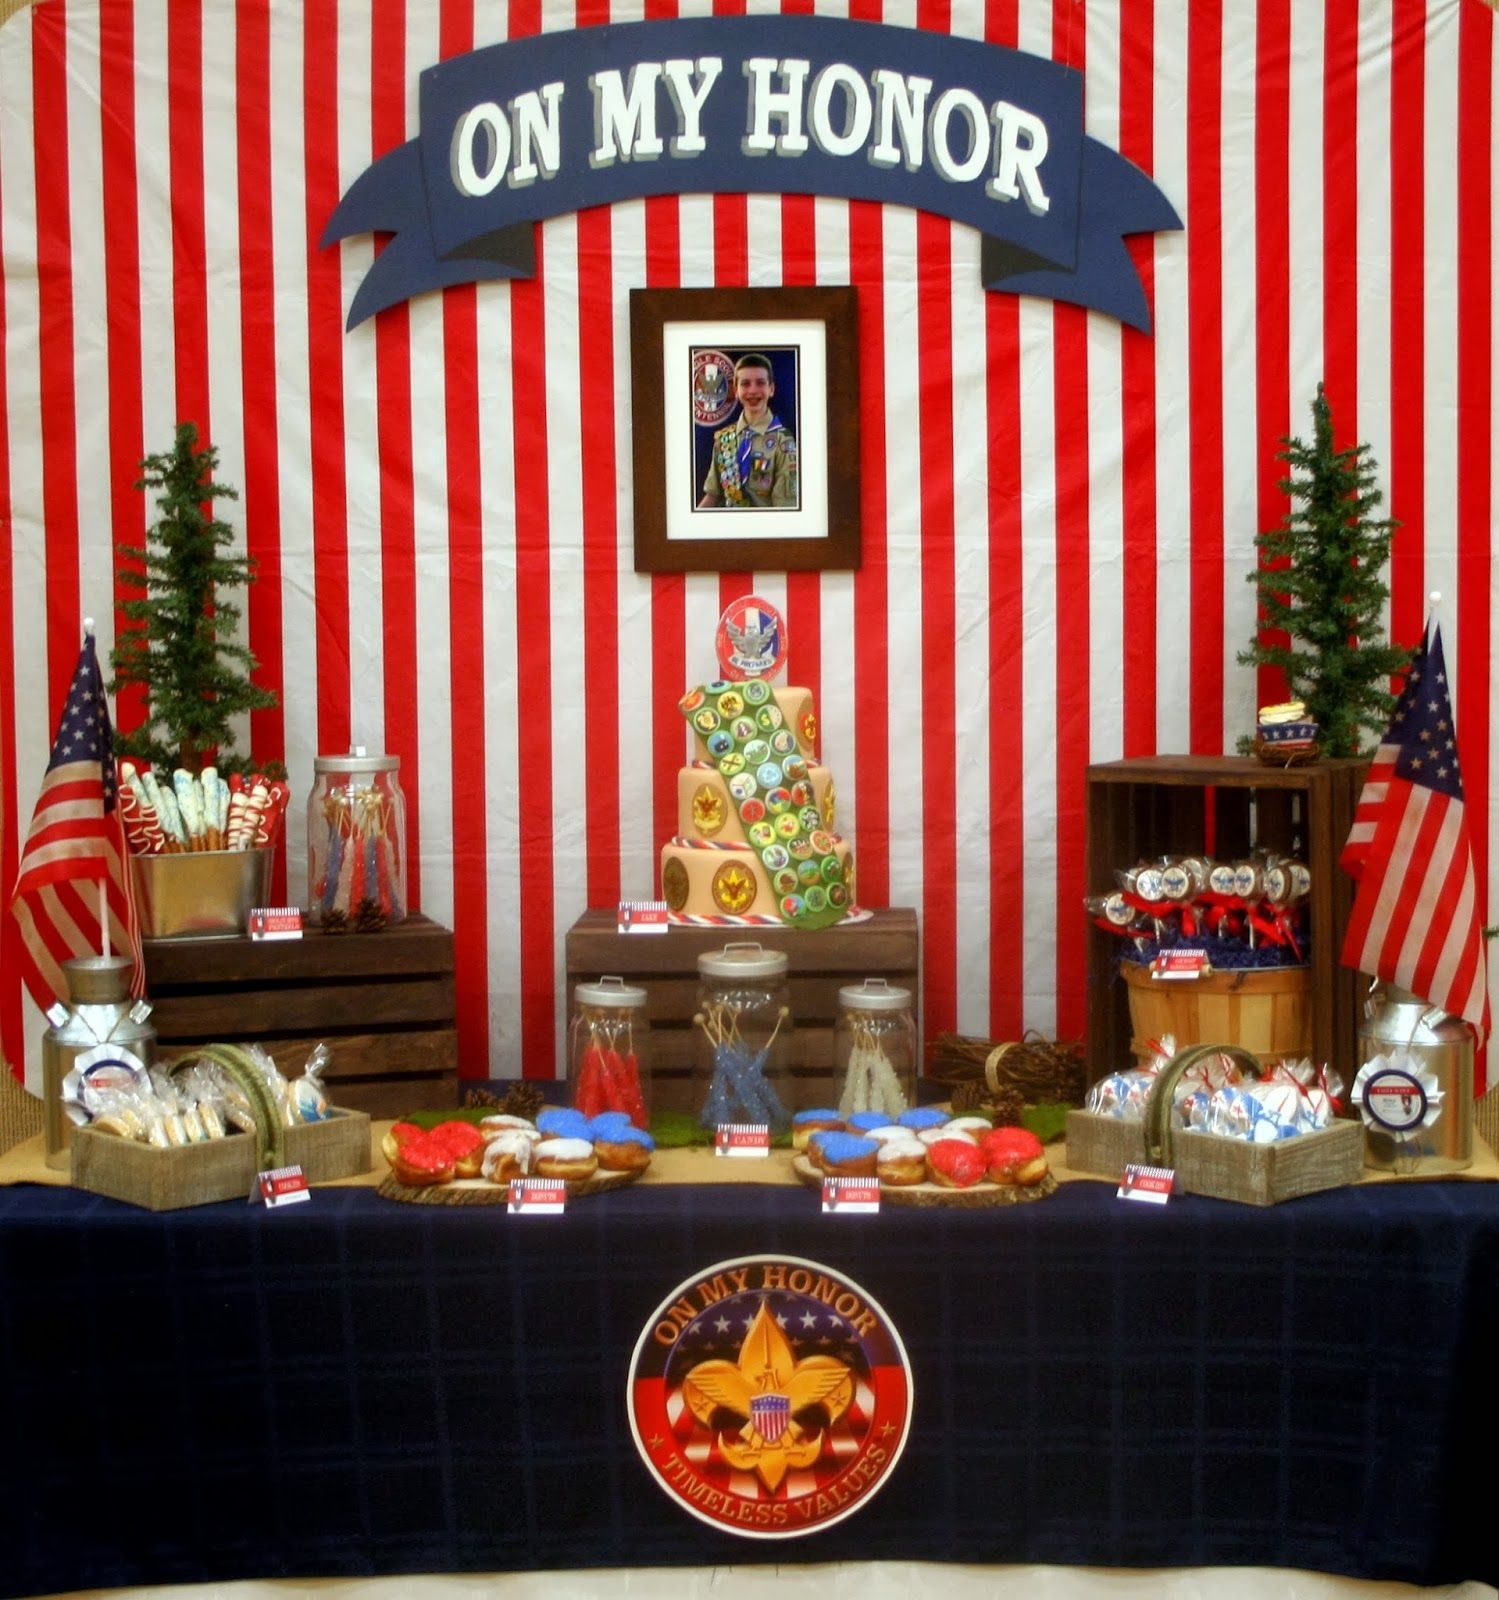 Cub Scout Christmas Party Ideas Part - 37: Eagle Scout Court Of Honor #EagleScout #BSA #CourtofHonor